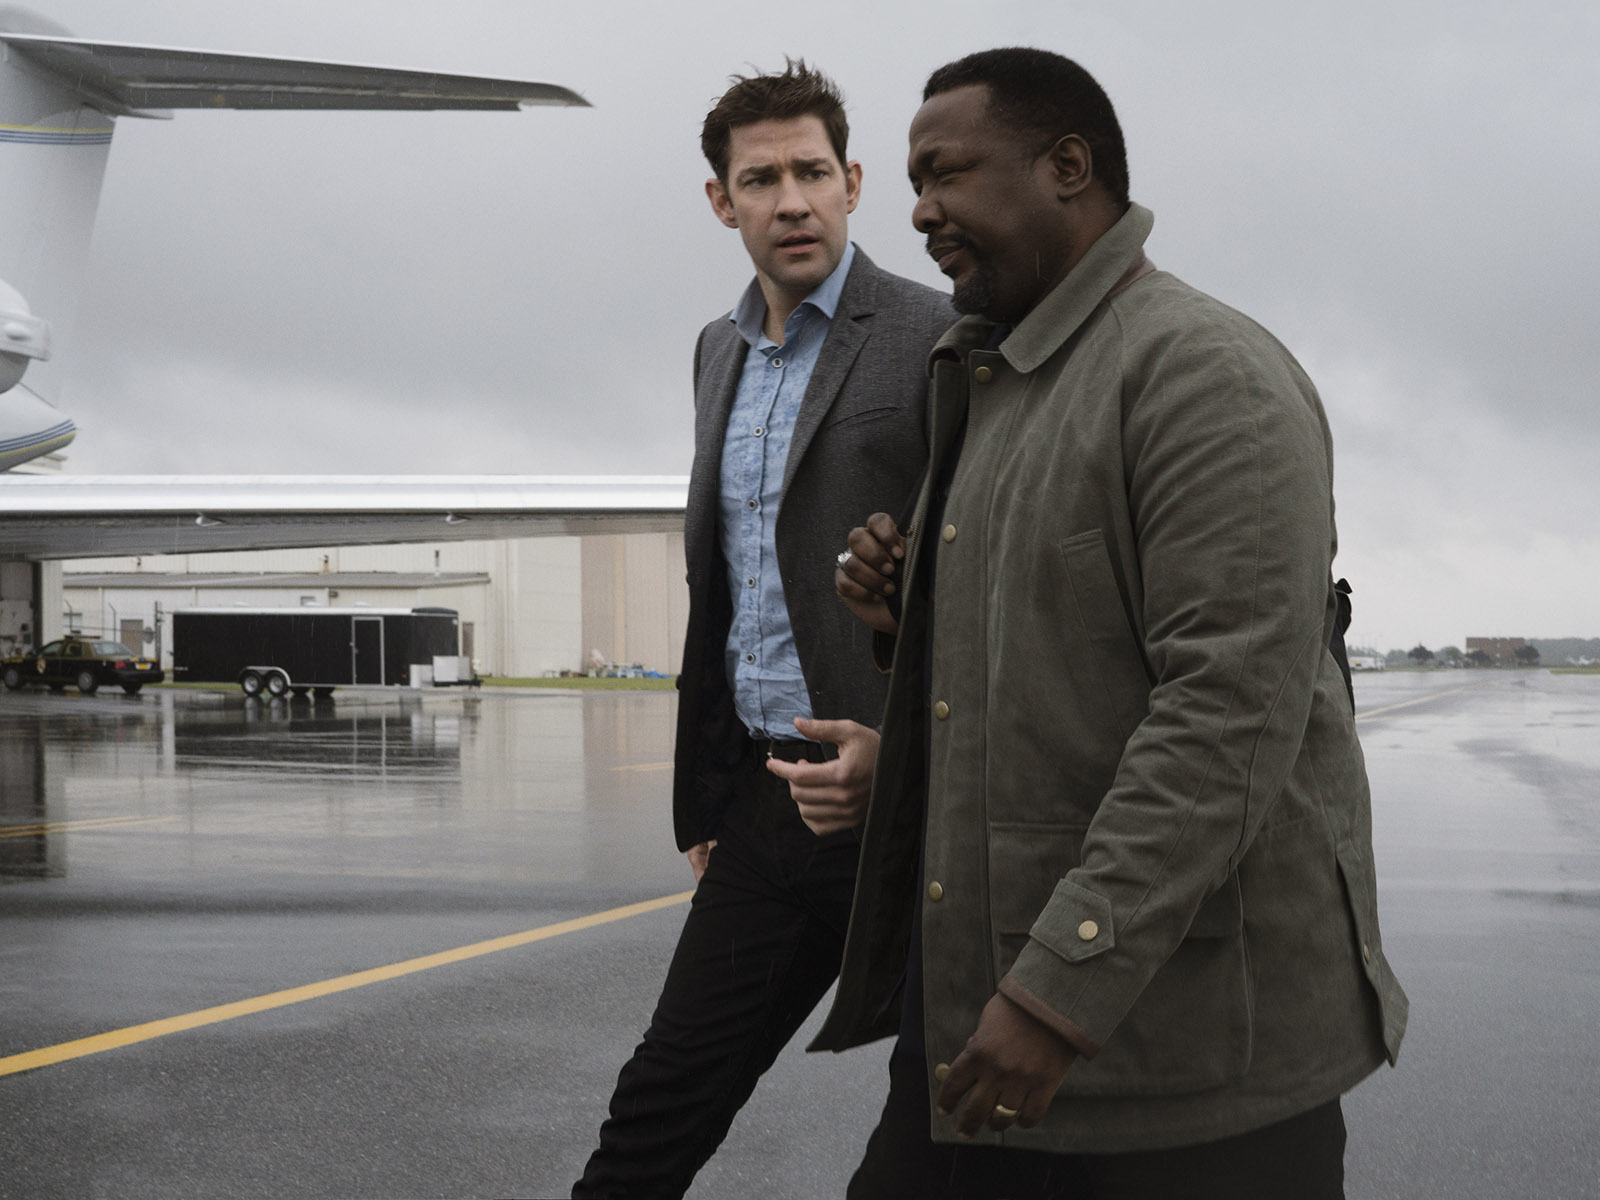 Jack Ryan Season 3 Release Date, Cast: What to Expect After Season 2 Ends?